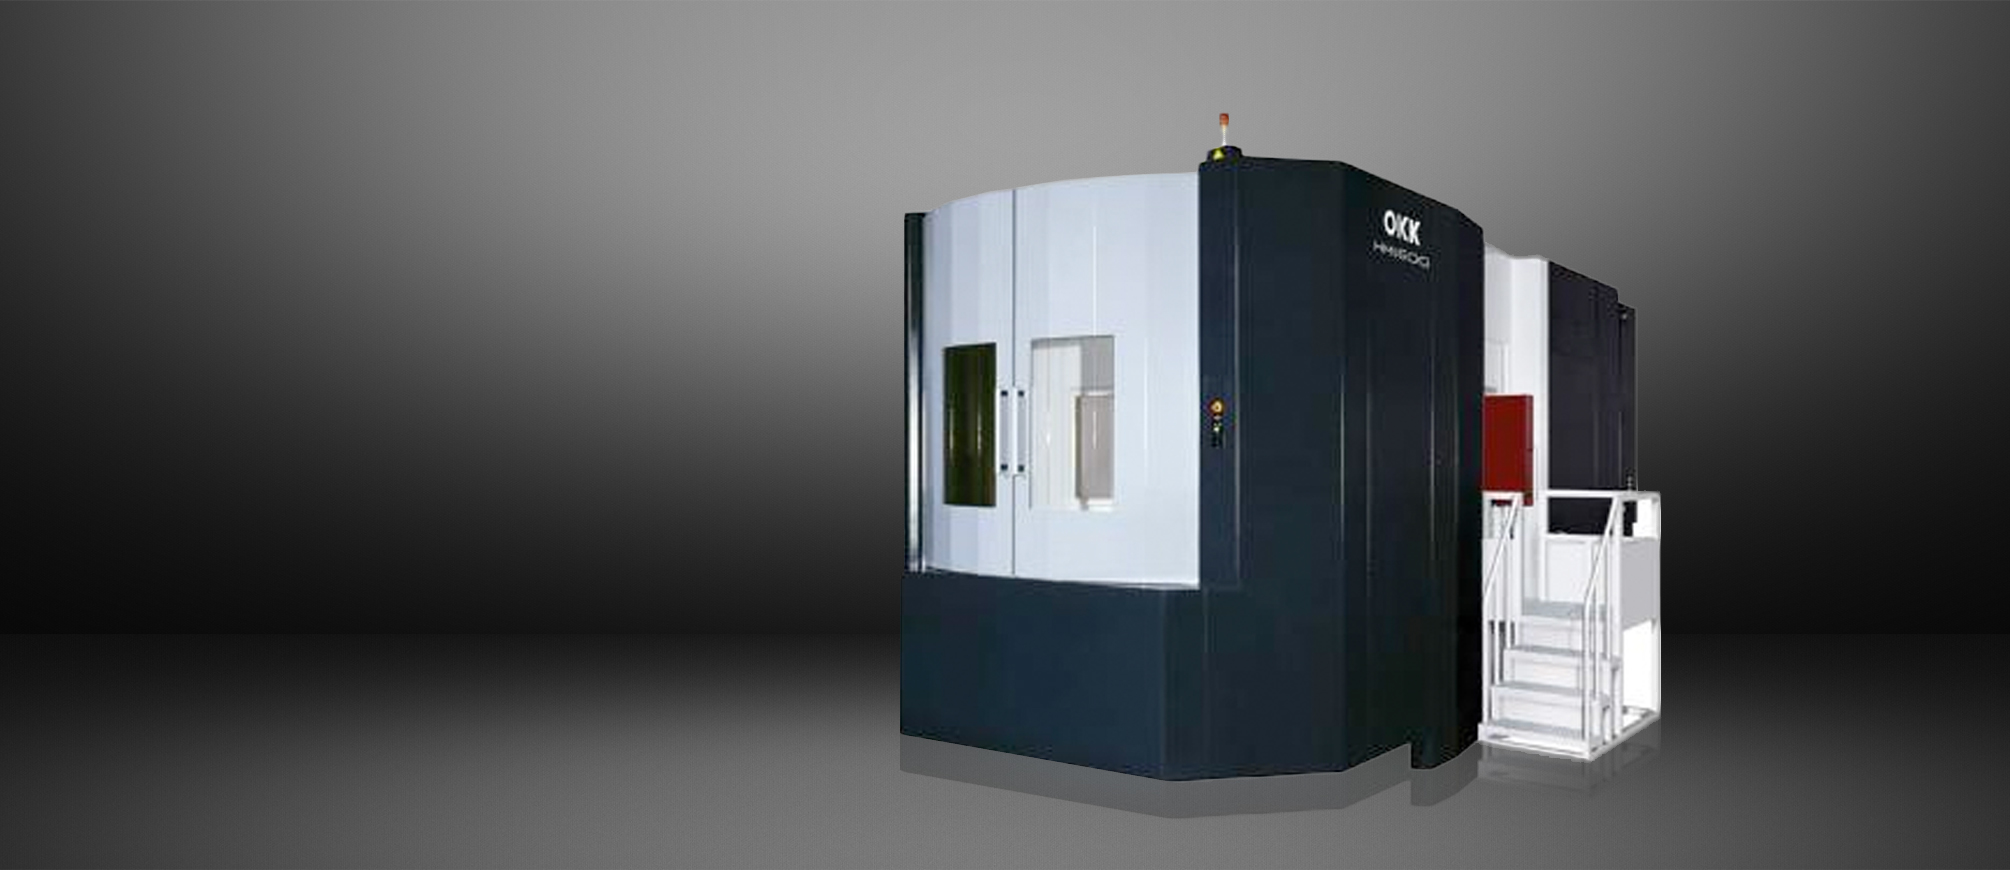 HM-1600 Horizontal Machining Centers